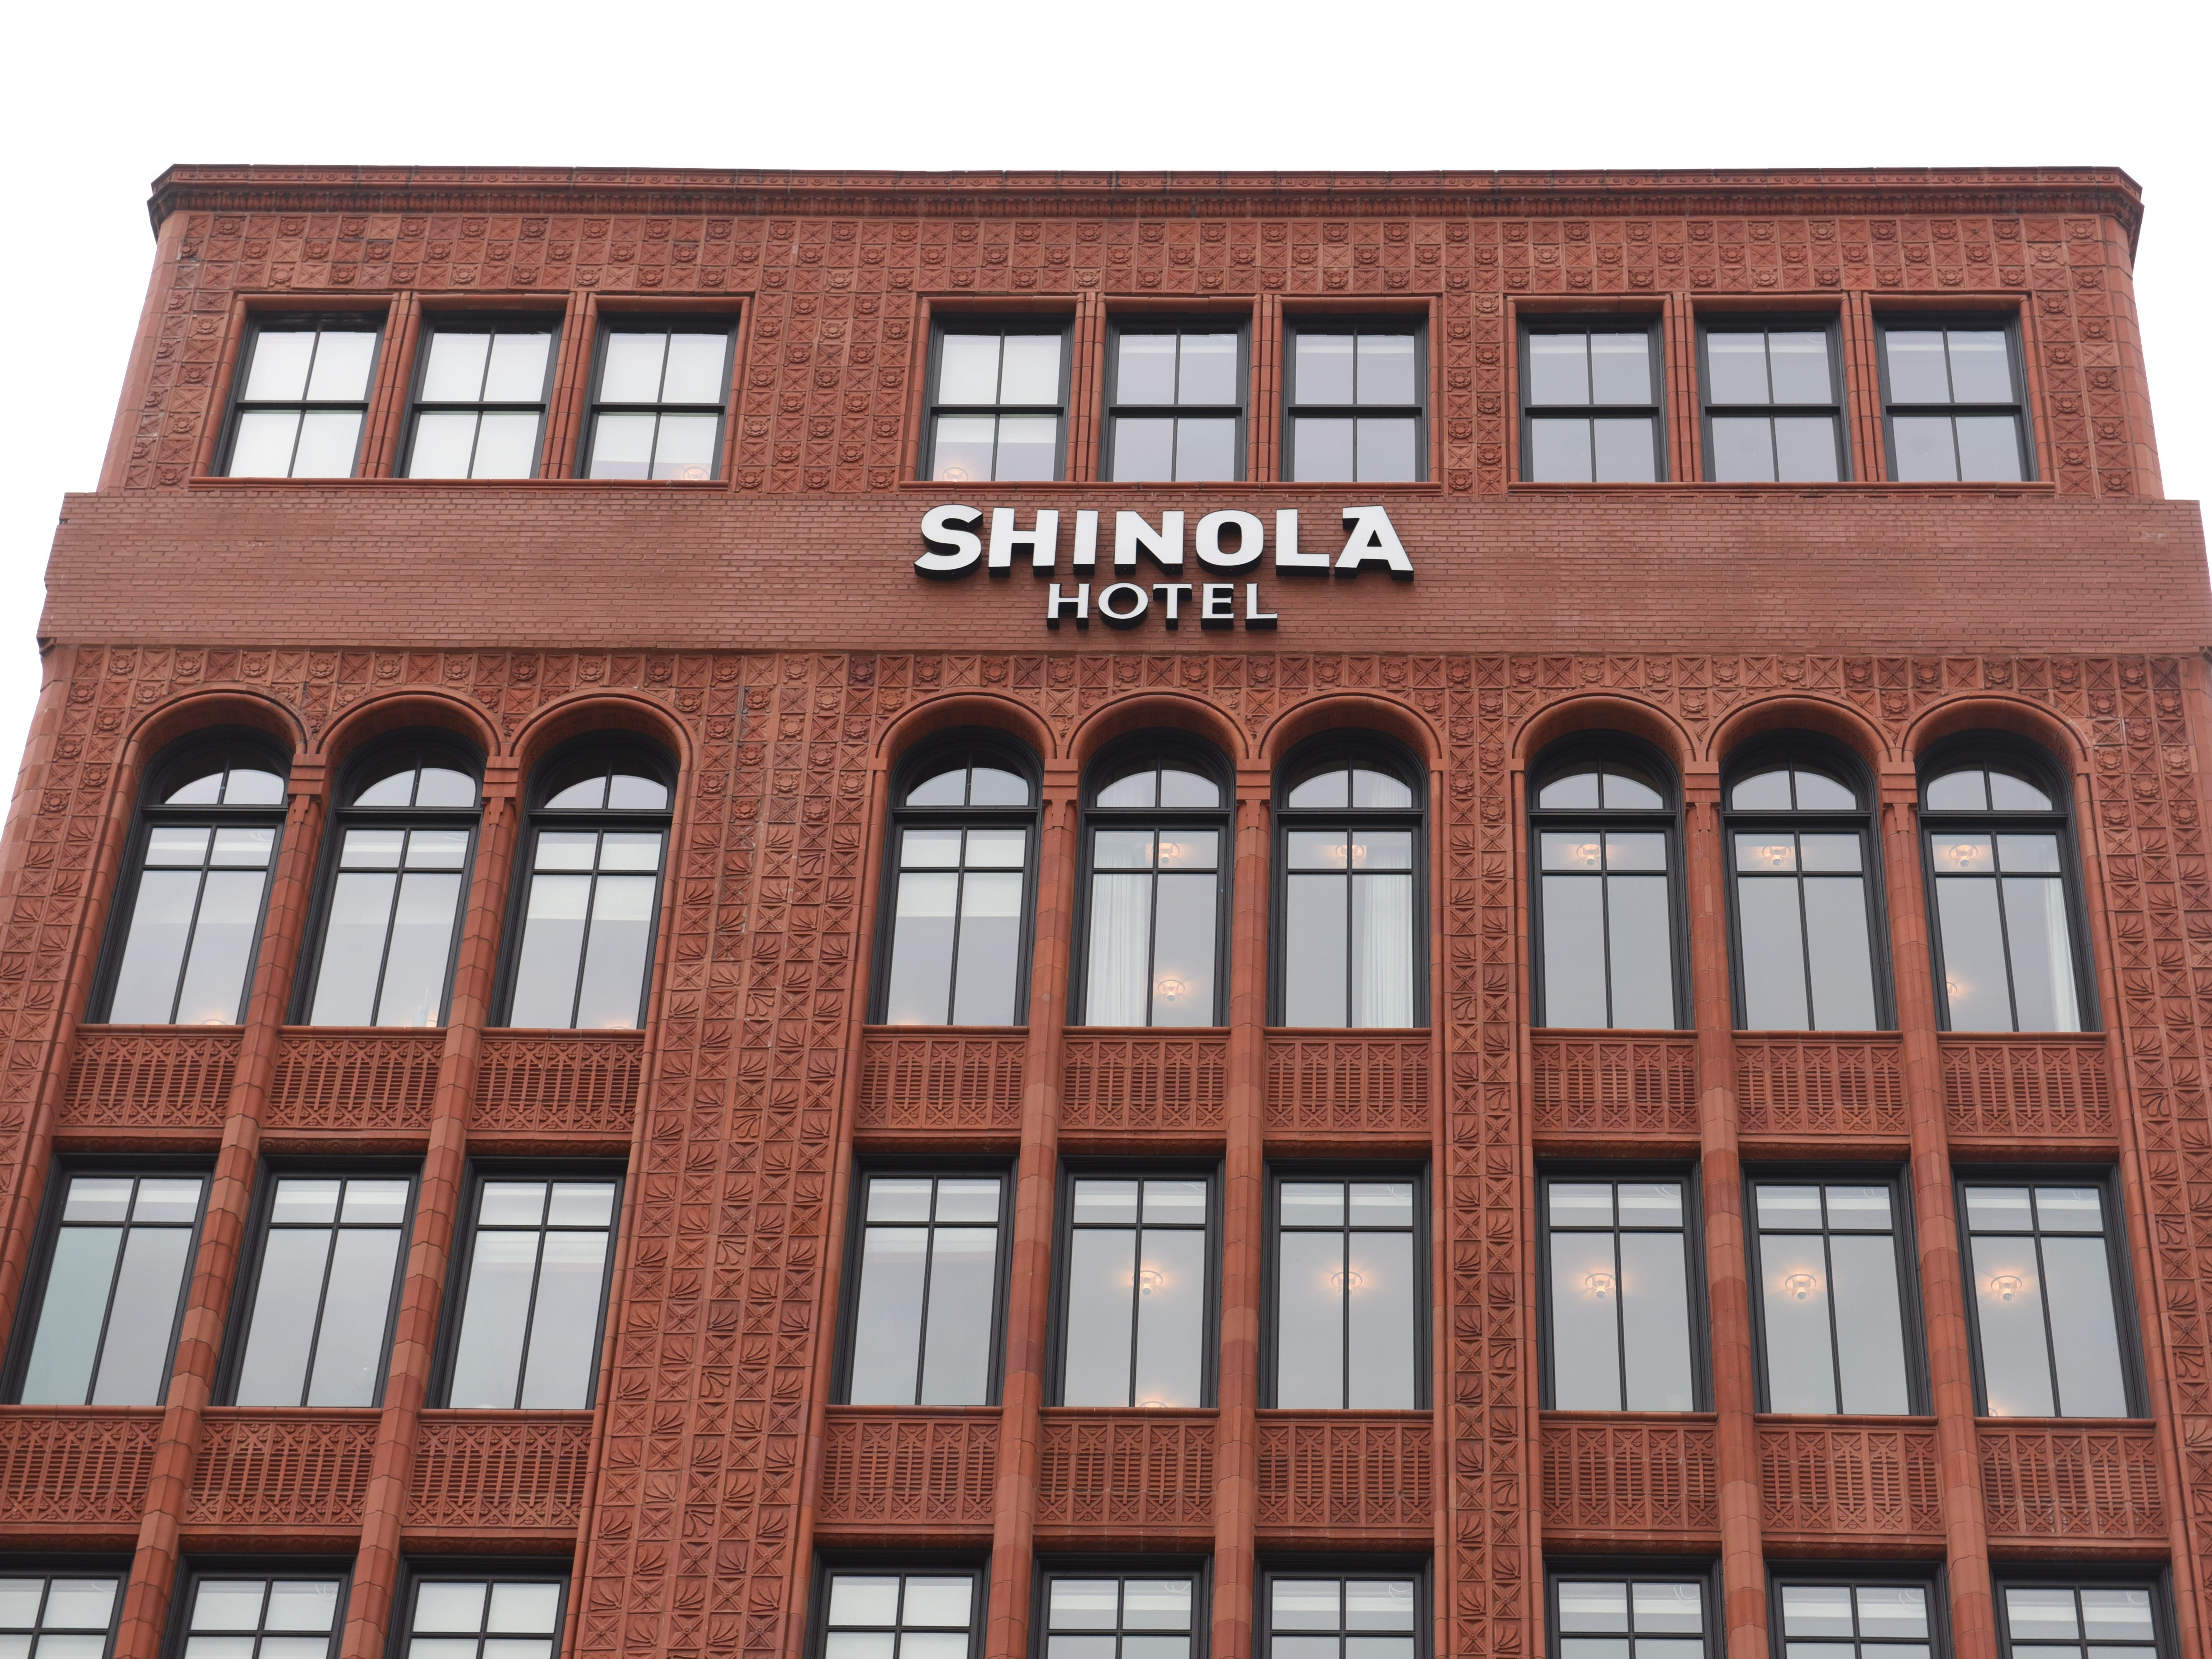 The eight-story Shinola Hotel at 1400 Woodward in downtown Detroit is preparing for its public opening on January 2, 2019.  The boutique hotel has 129 guest rooms plus 16,000 square feet for shops, bars and food.